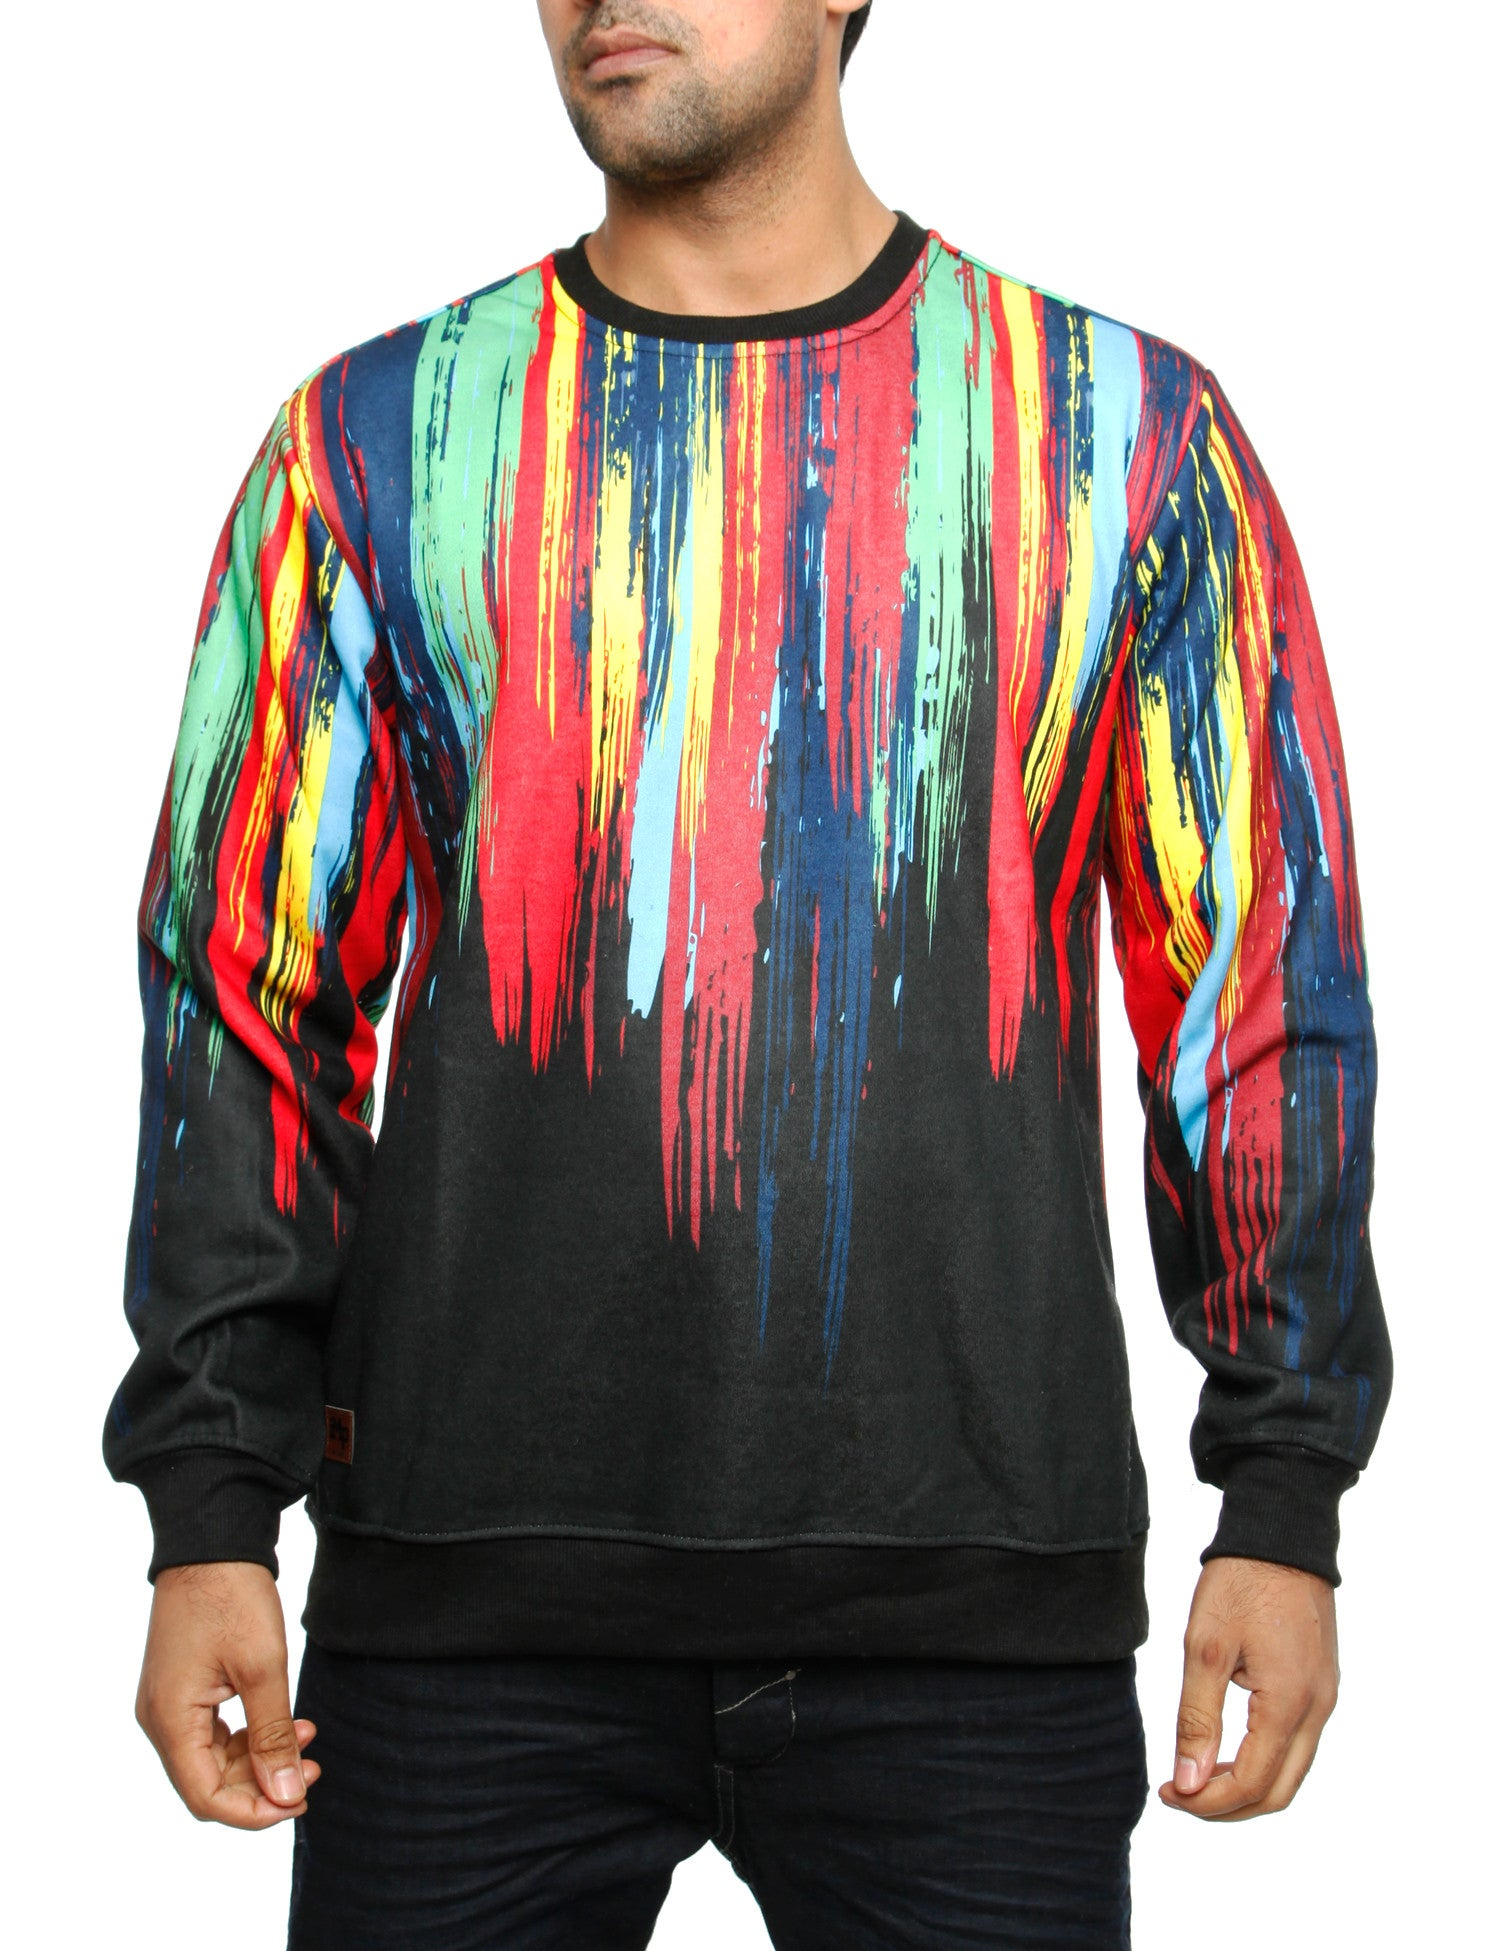 Imperious ?Brush? Sweatshirt CS555 Black